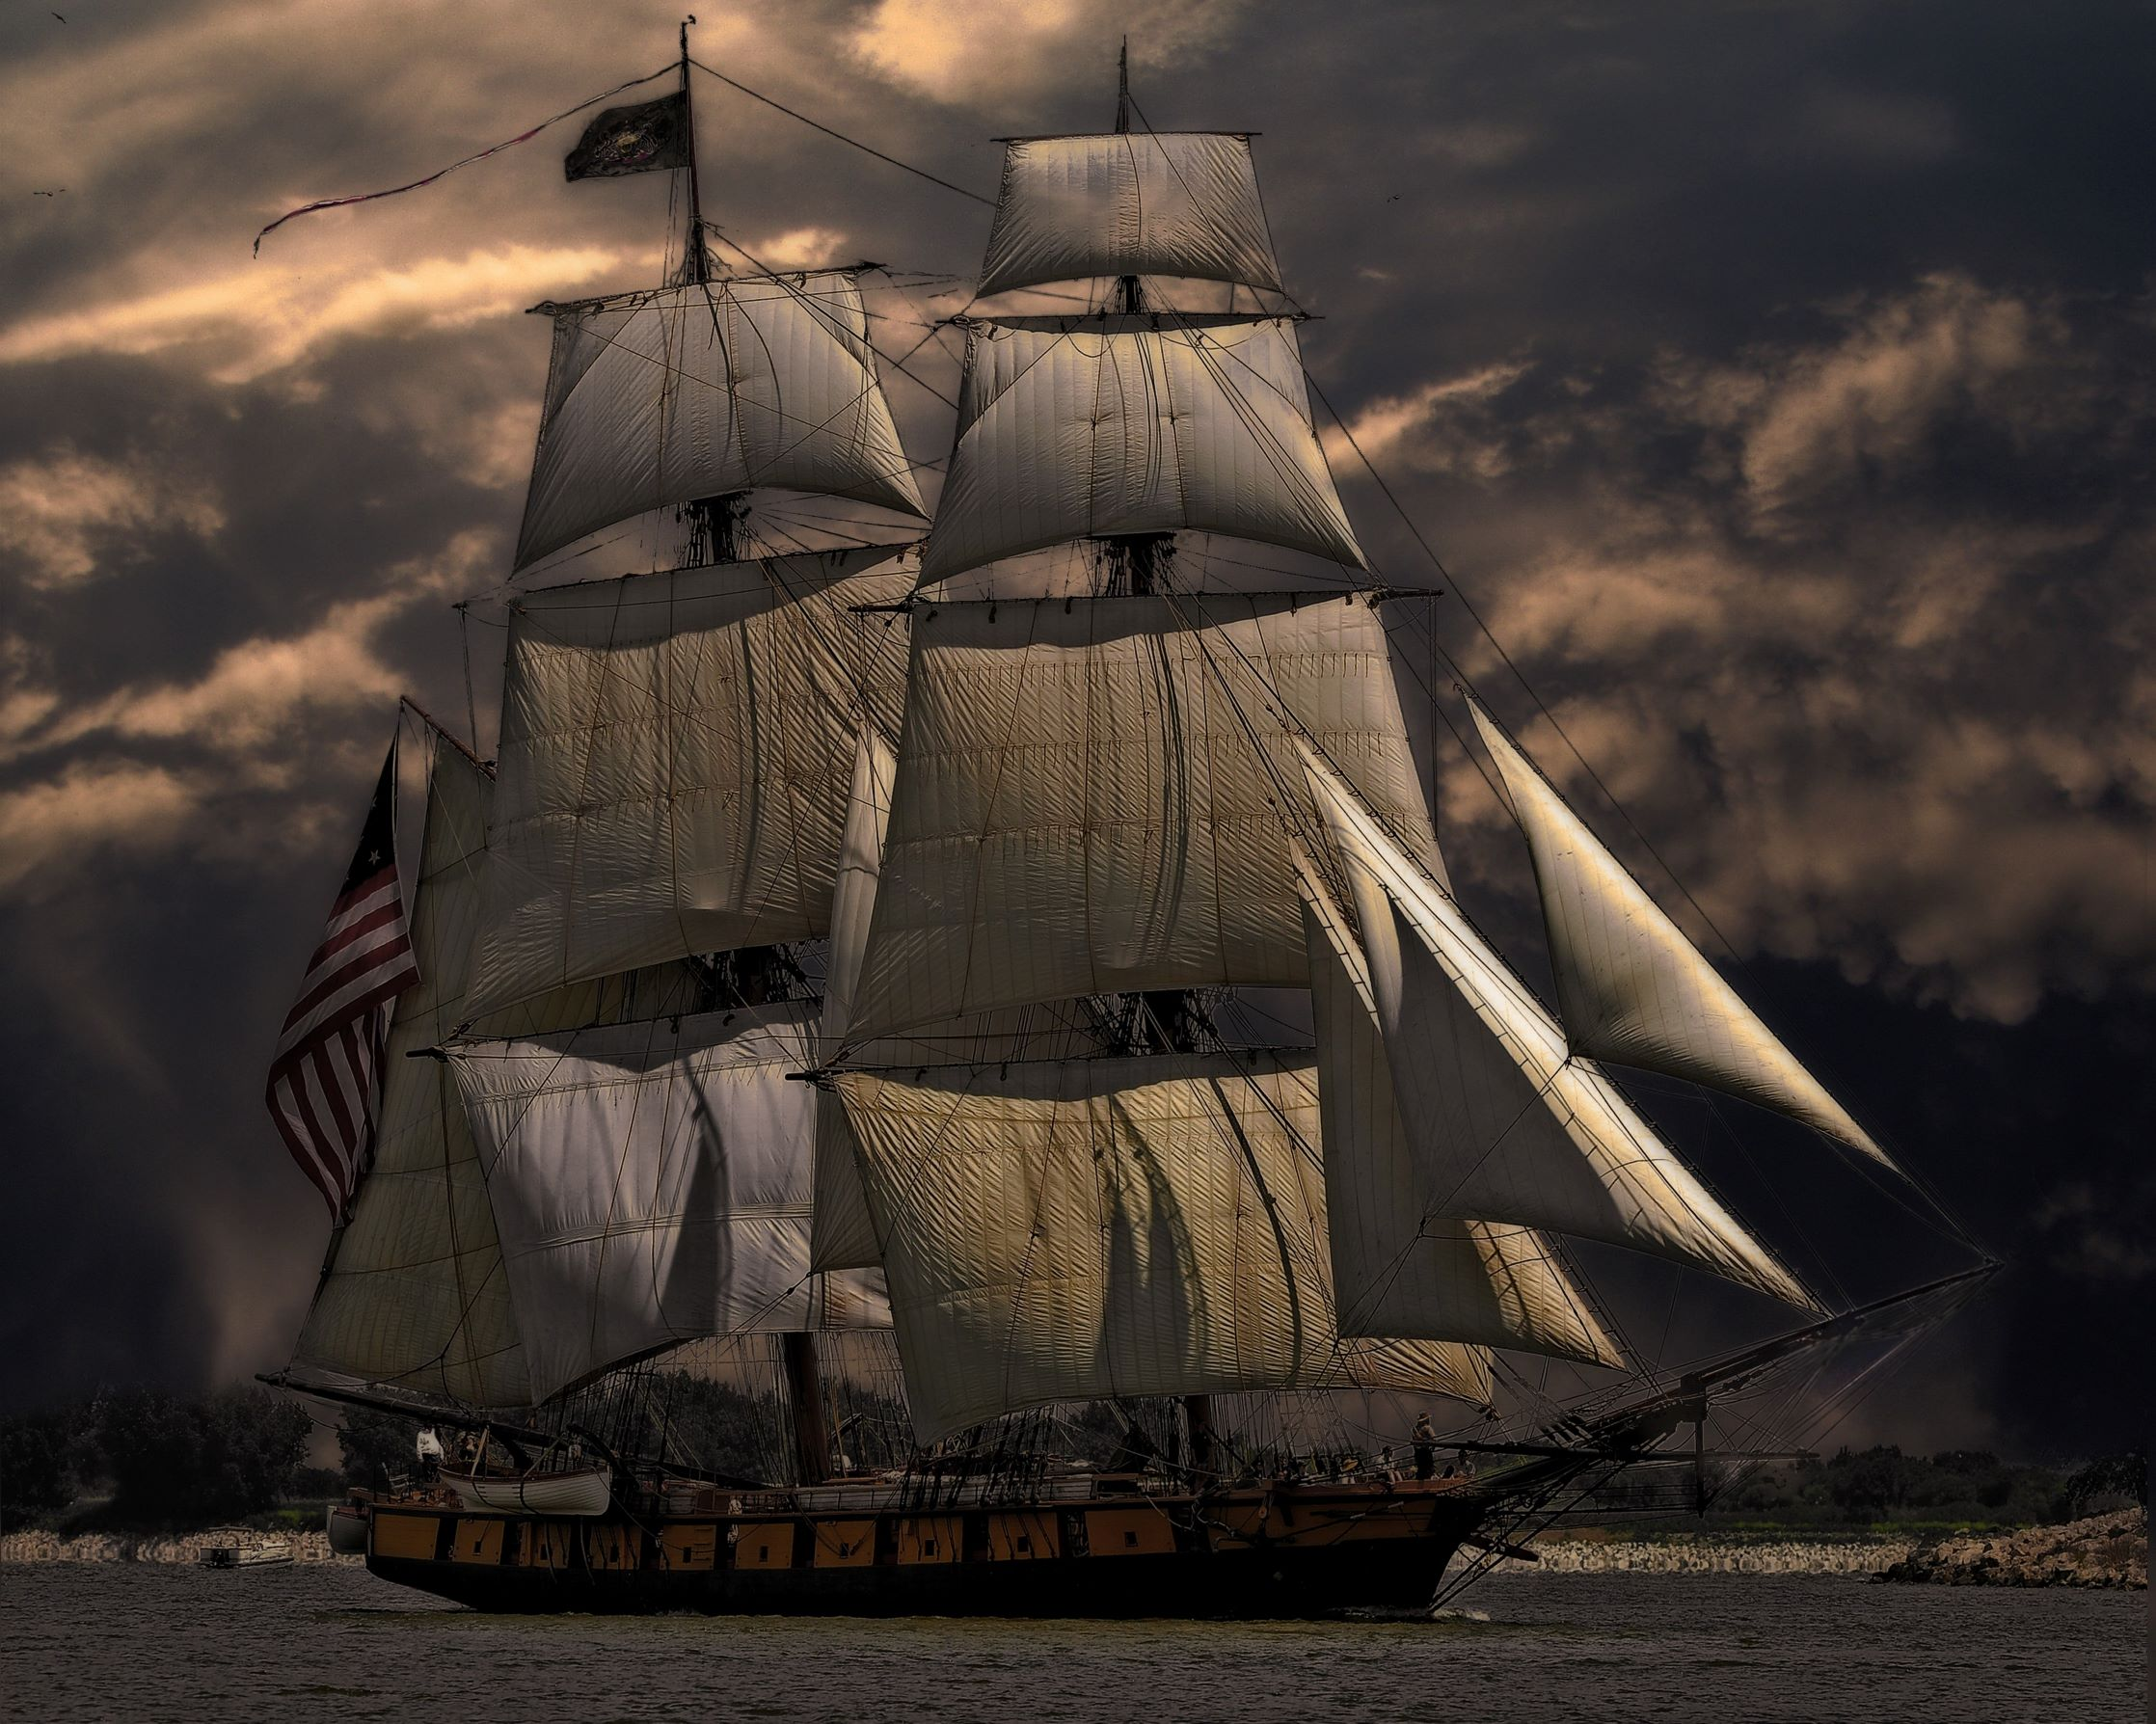 Ship of State Poems